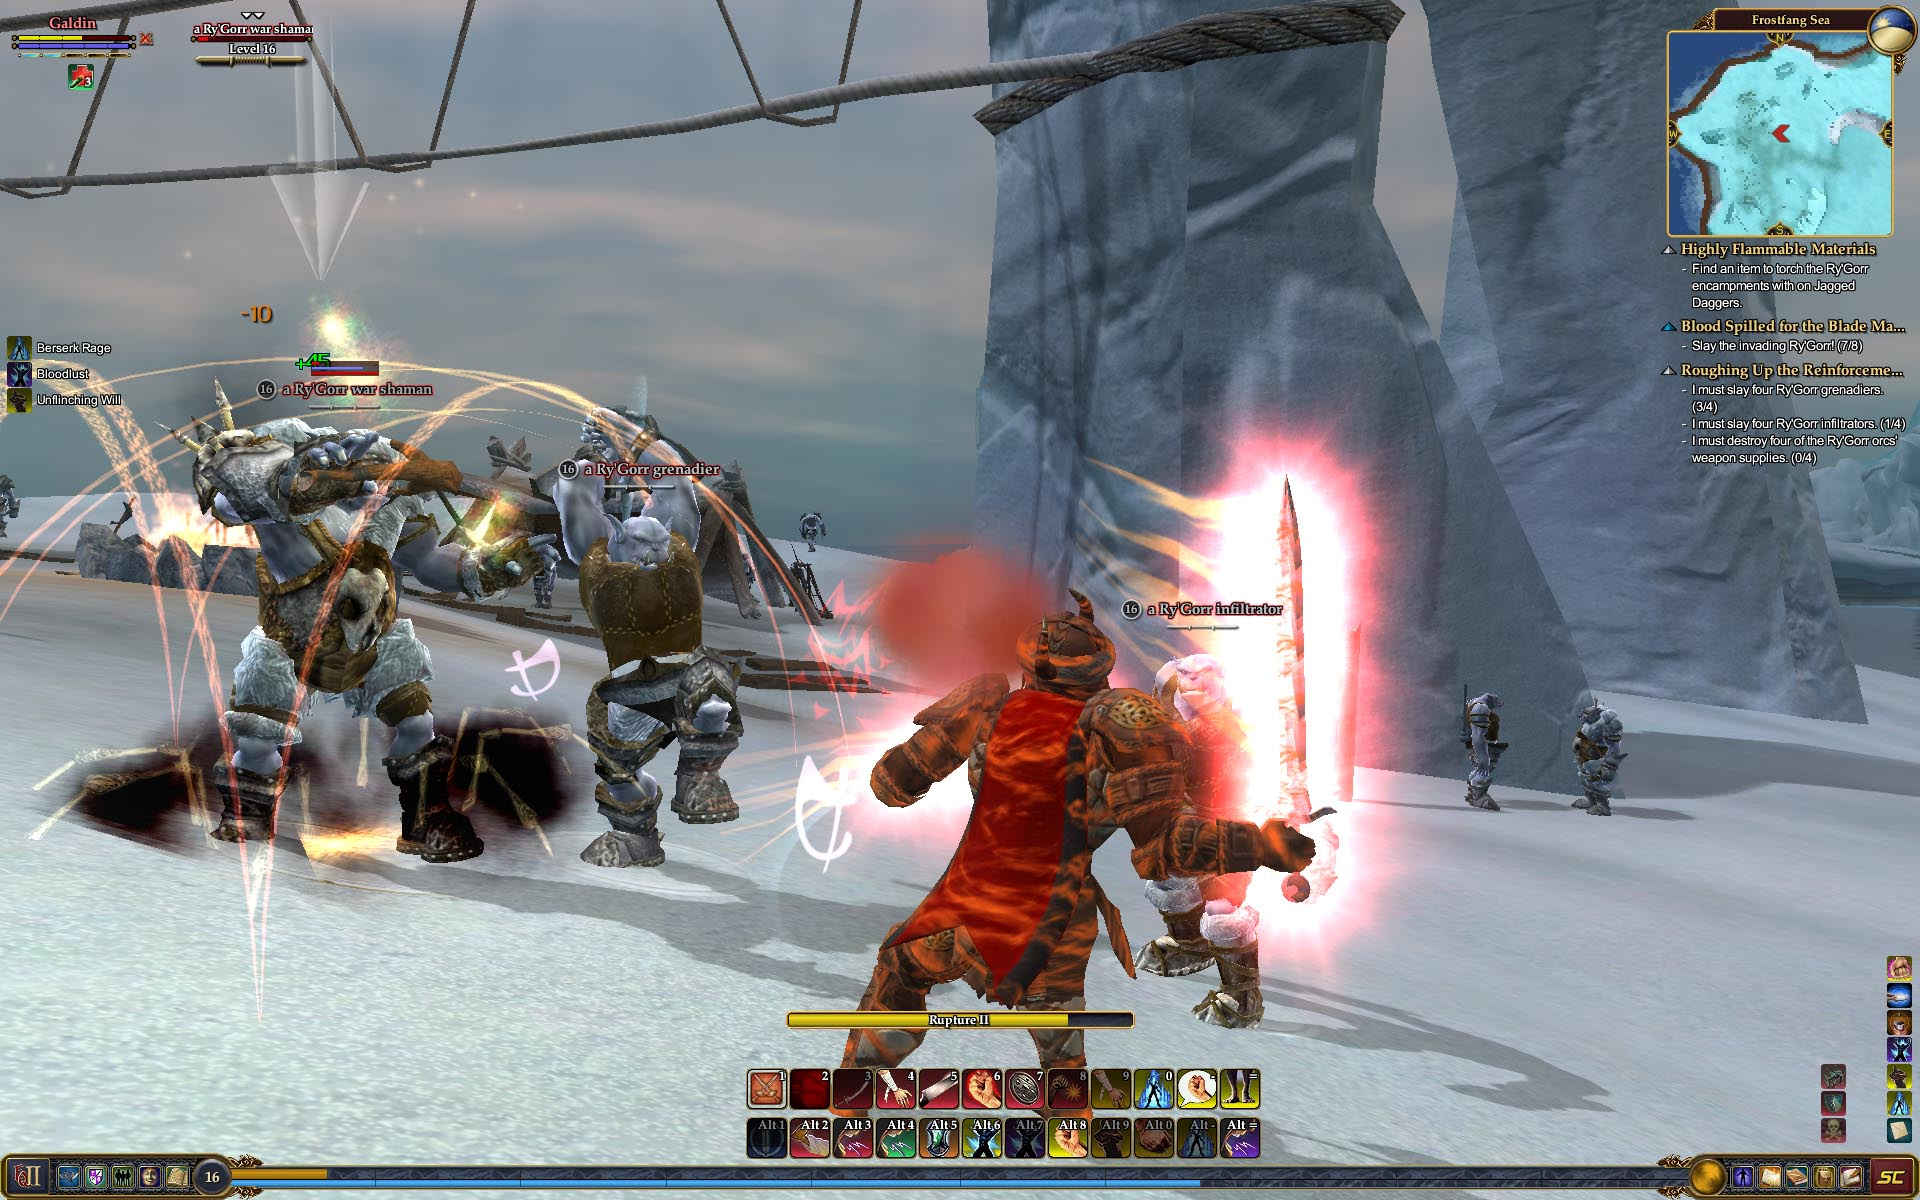 Free-to-play EverQuest beta goes live - Neoseeker